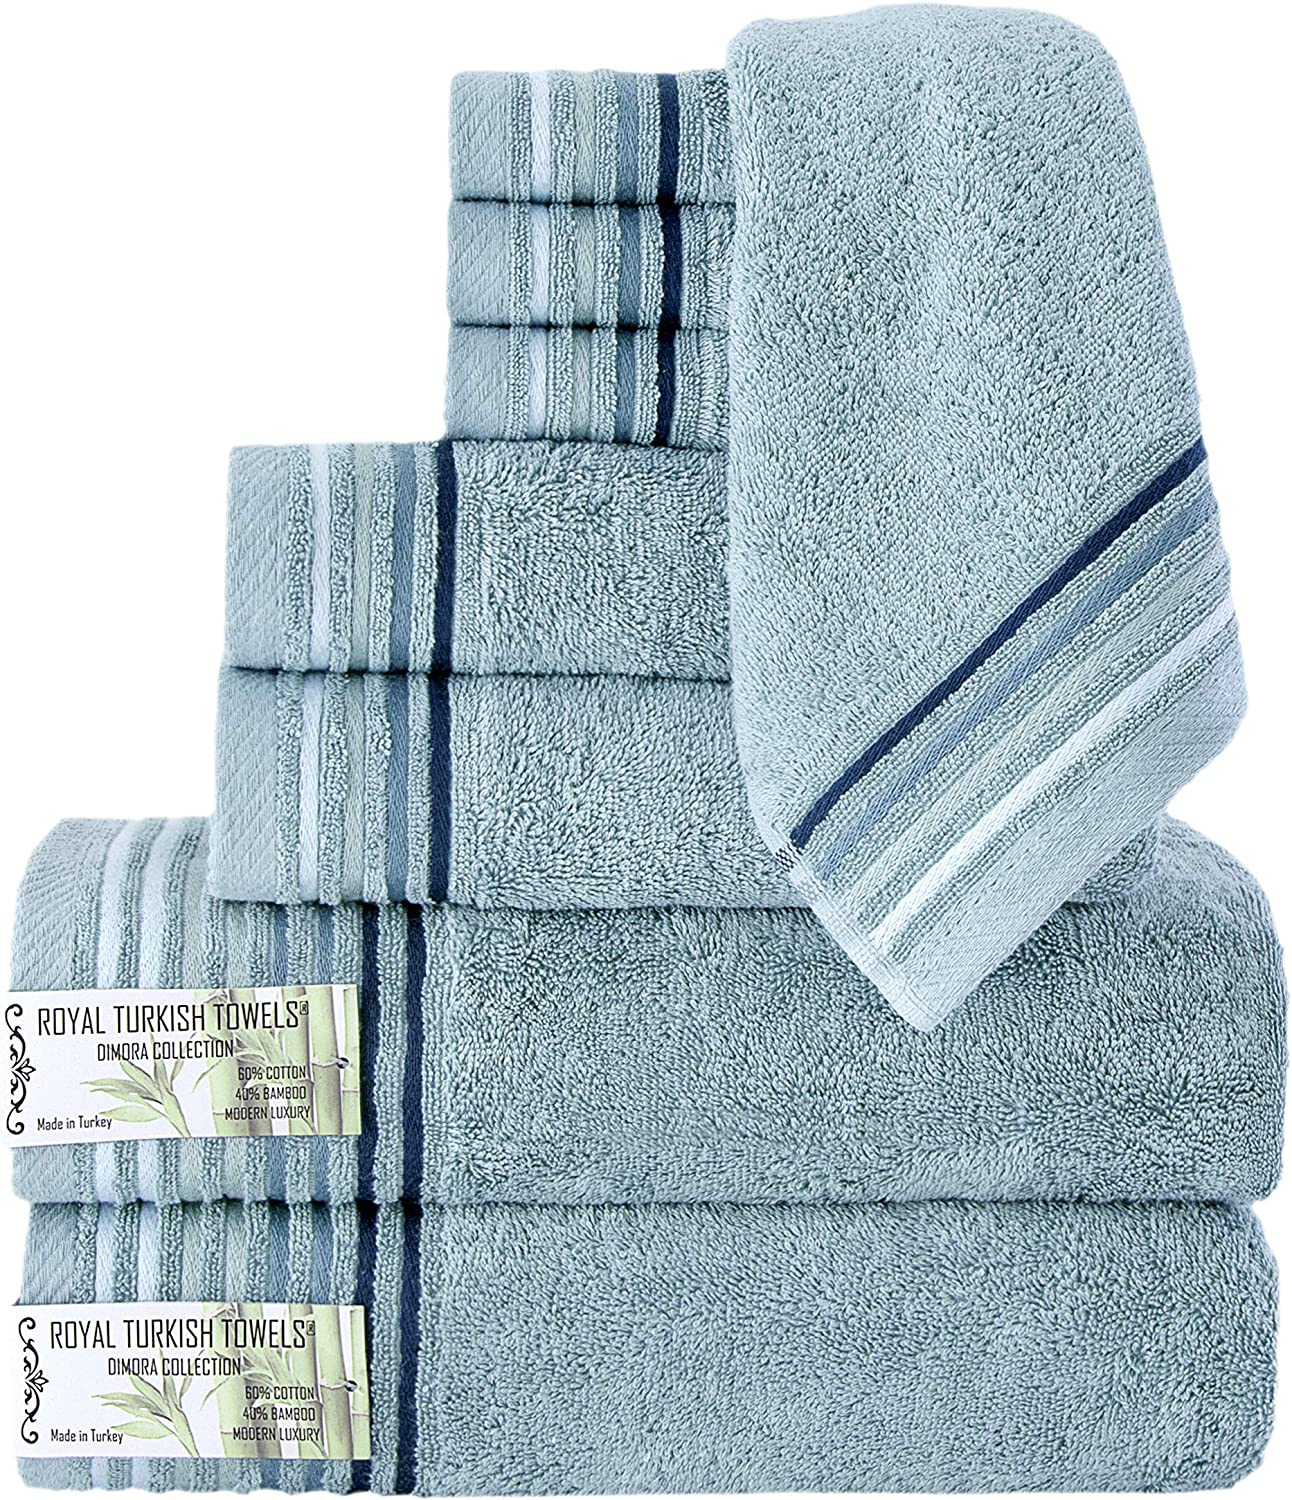 Classic Turkish Towels 8 Piece Luxury Bamboo Cotton Fiber Towel Set - Silky Soft Natural Hypoallergenic Bath Towels (Green)